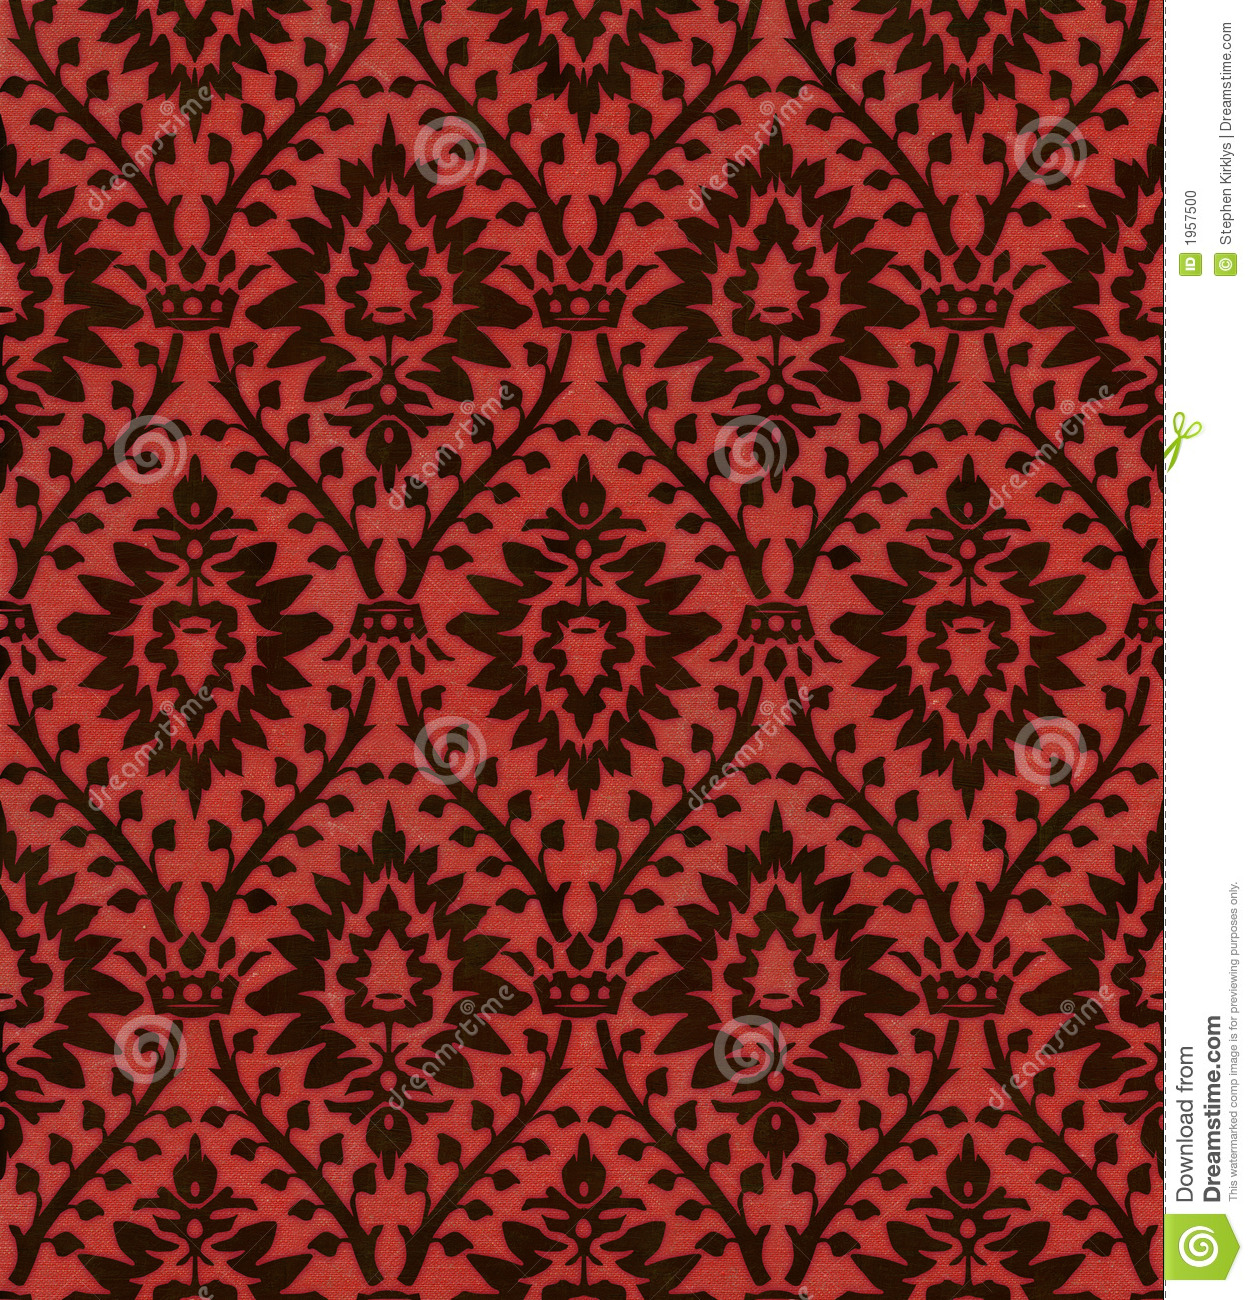 Victorian wallpaper pattern red - photo#16